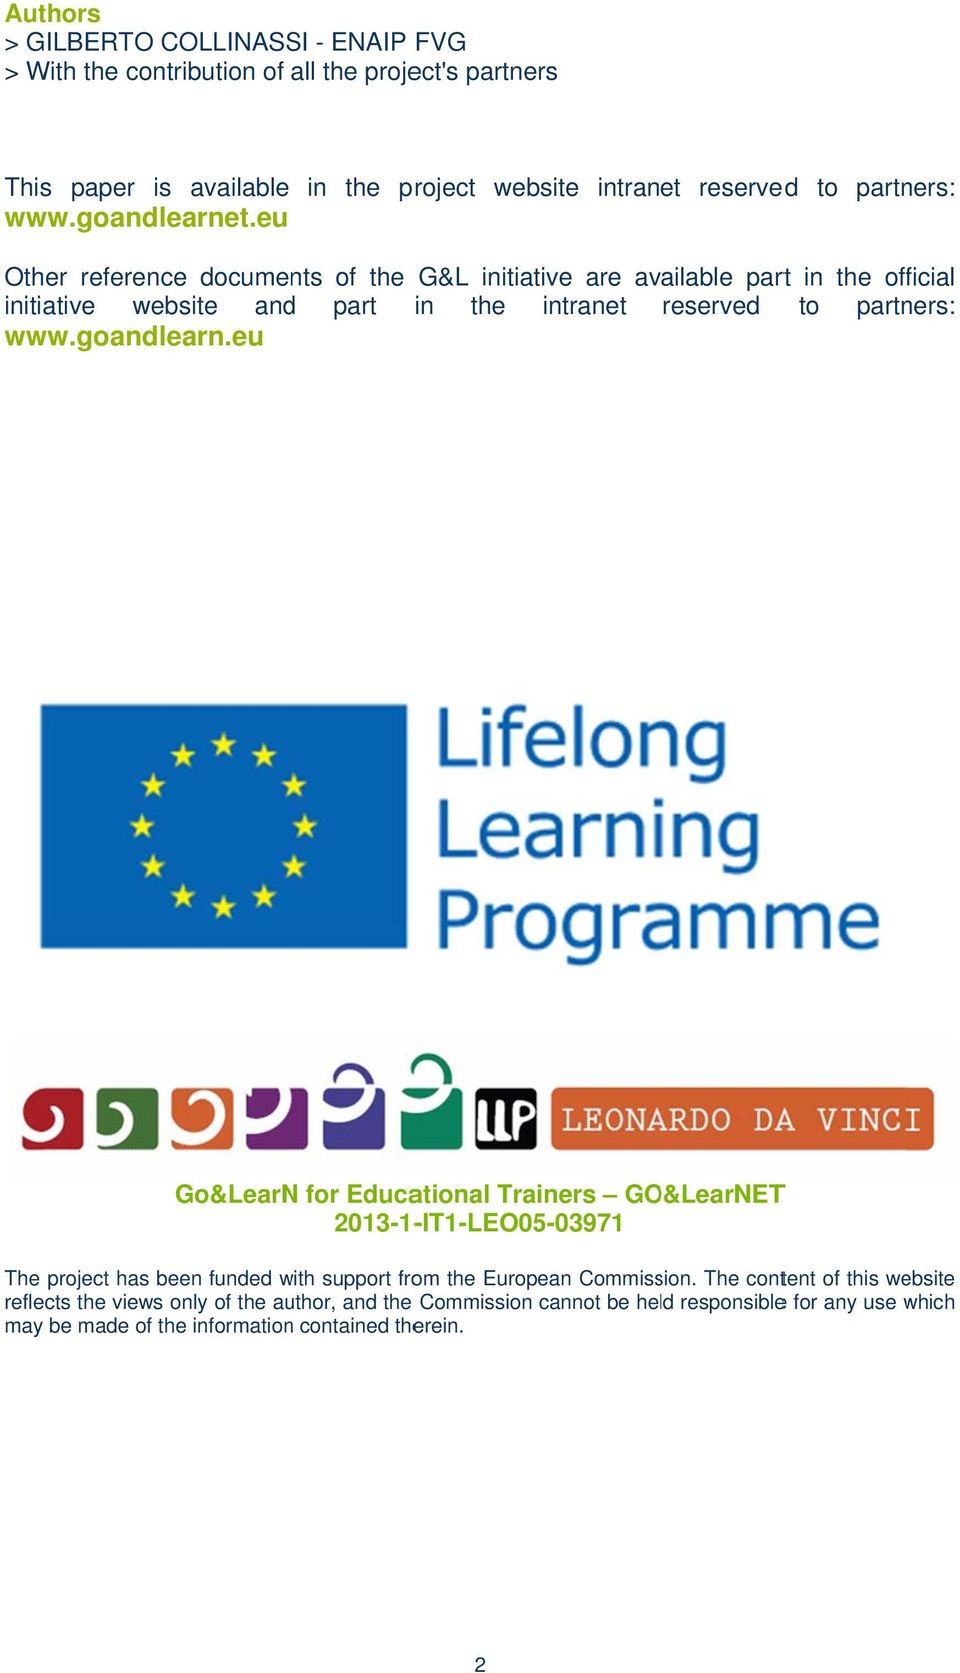 eu G&L initiative are available part in the official in the intranet reserved to partners: Go&LearN for Educational Trainers GO&LearNETT 2013-1-IT1-LEO05-03971 The project